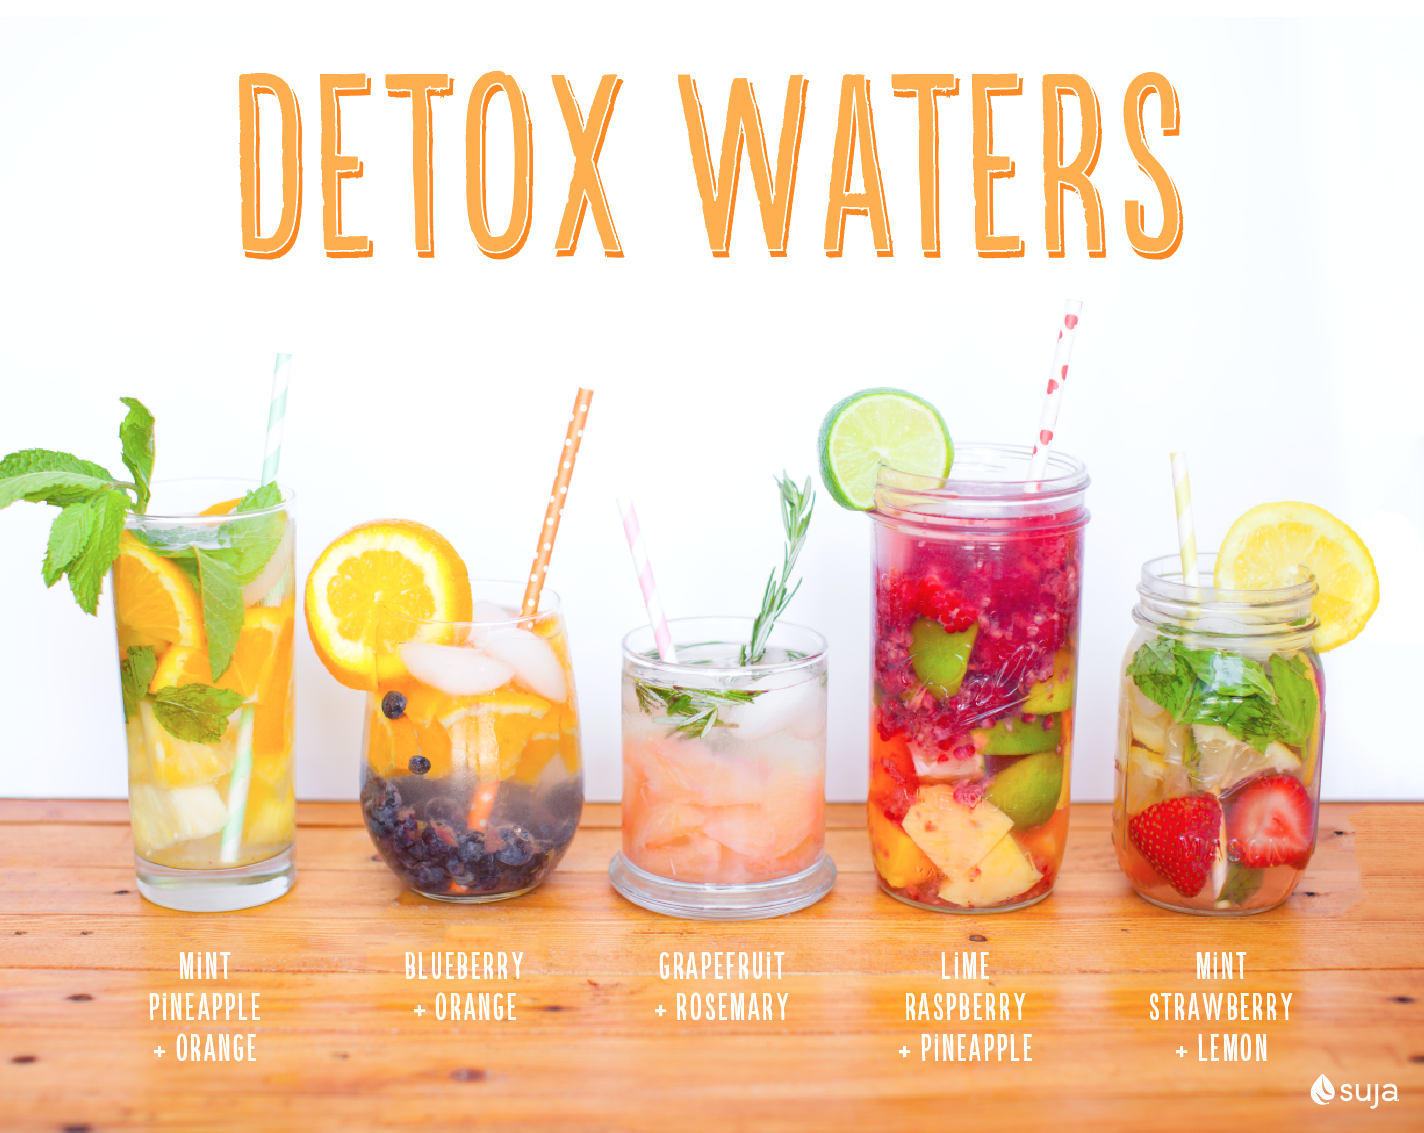 There's no better way to up your water intake than infusing it with some fresh fruits & herbs! Try some of these delish mixes!